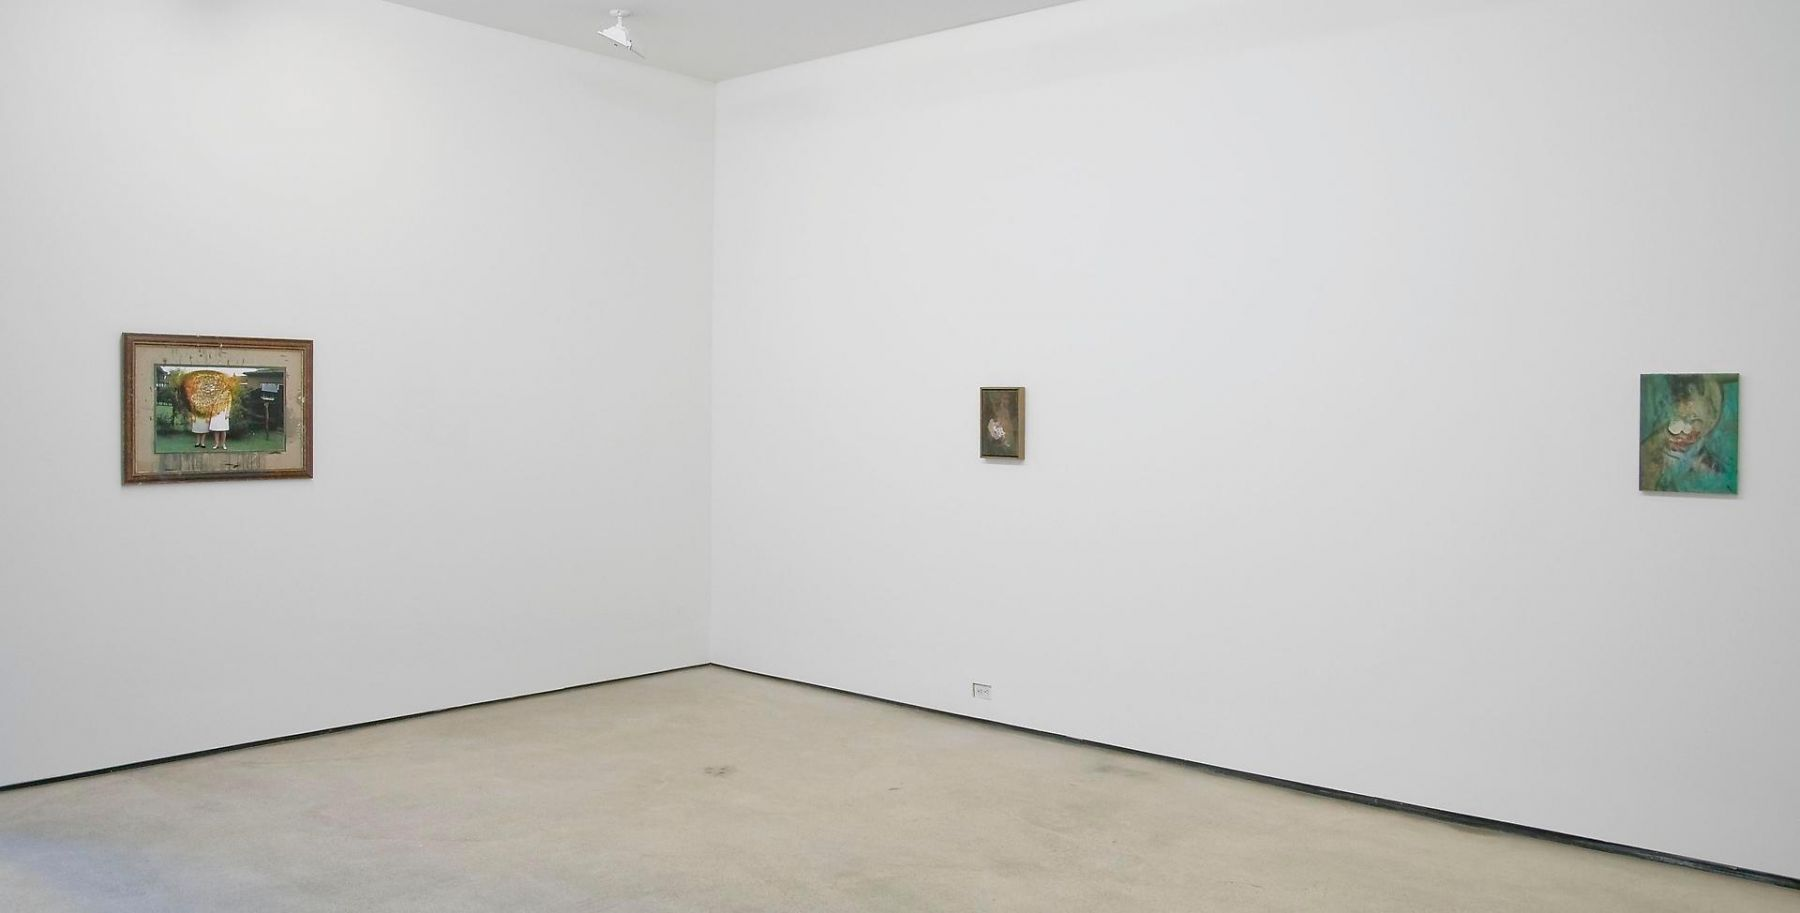 Installation view, Ross Chisholm, Garden of Forking Paths, Marc Jancou, New York, September 8 - October 22, 2011